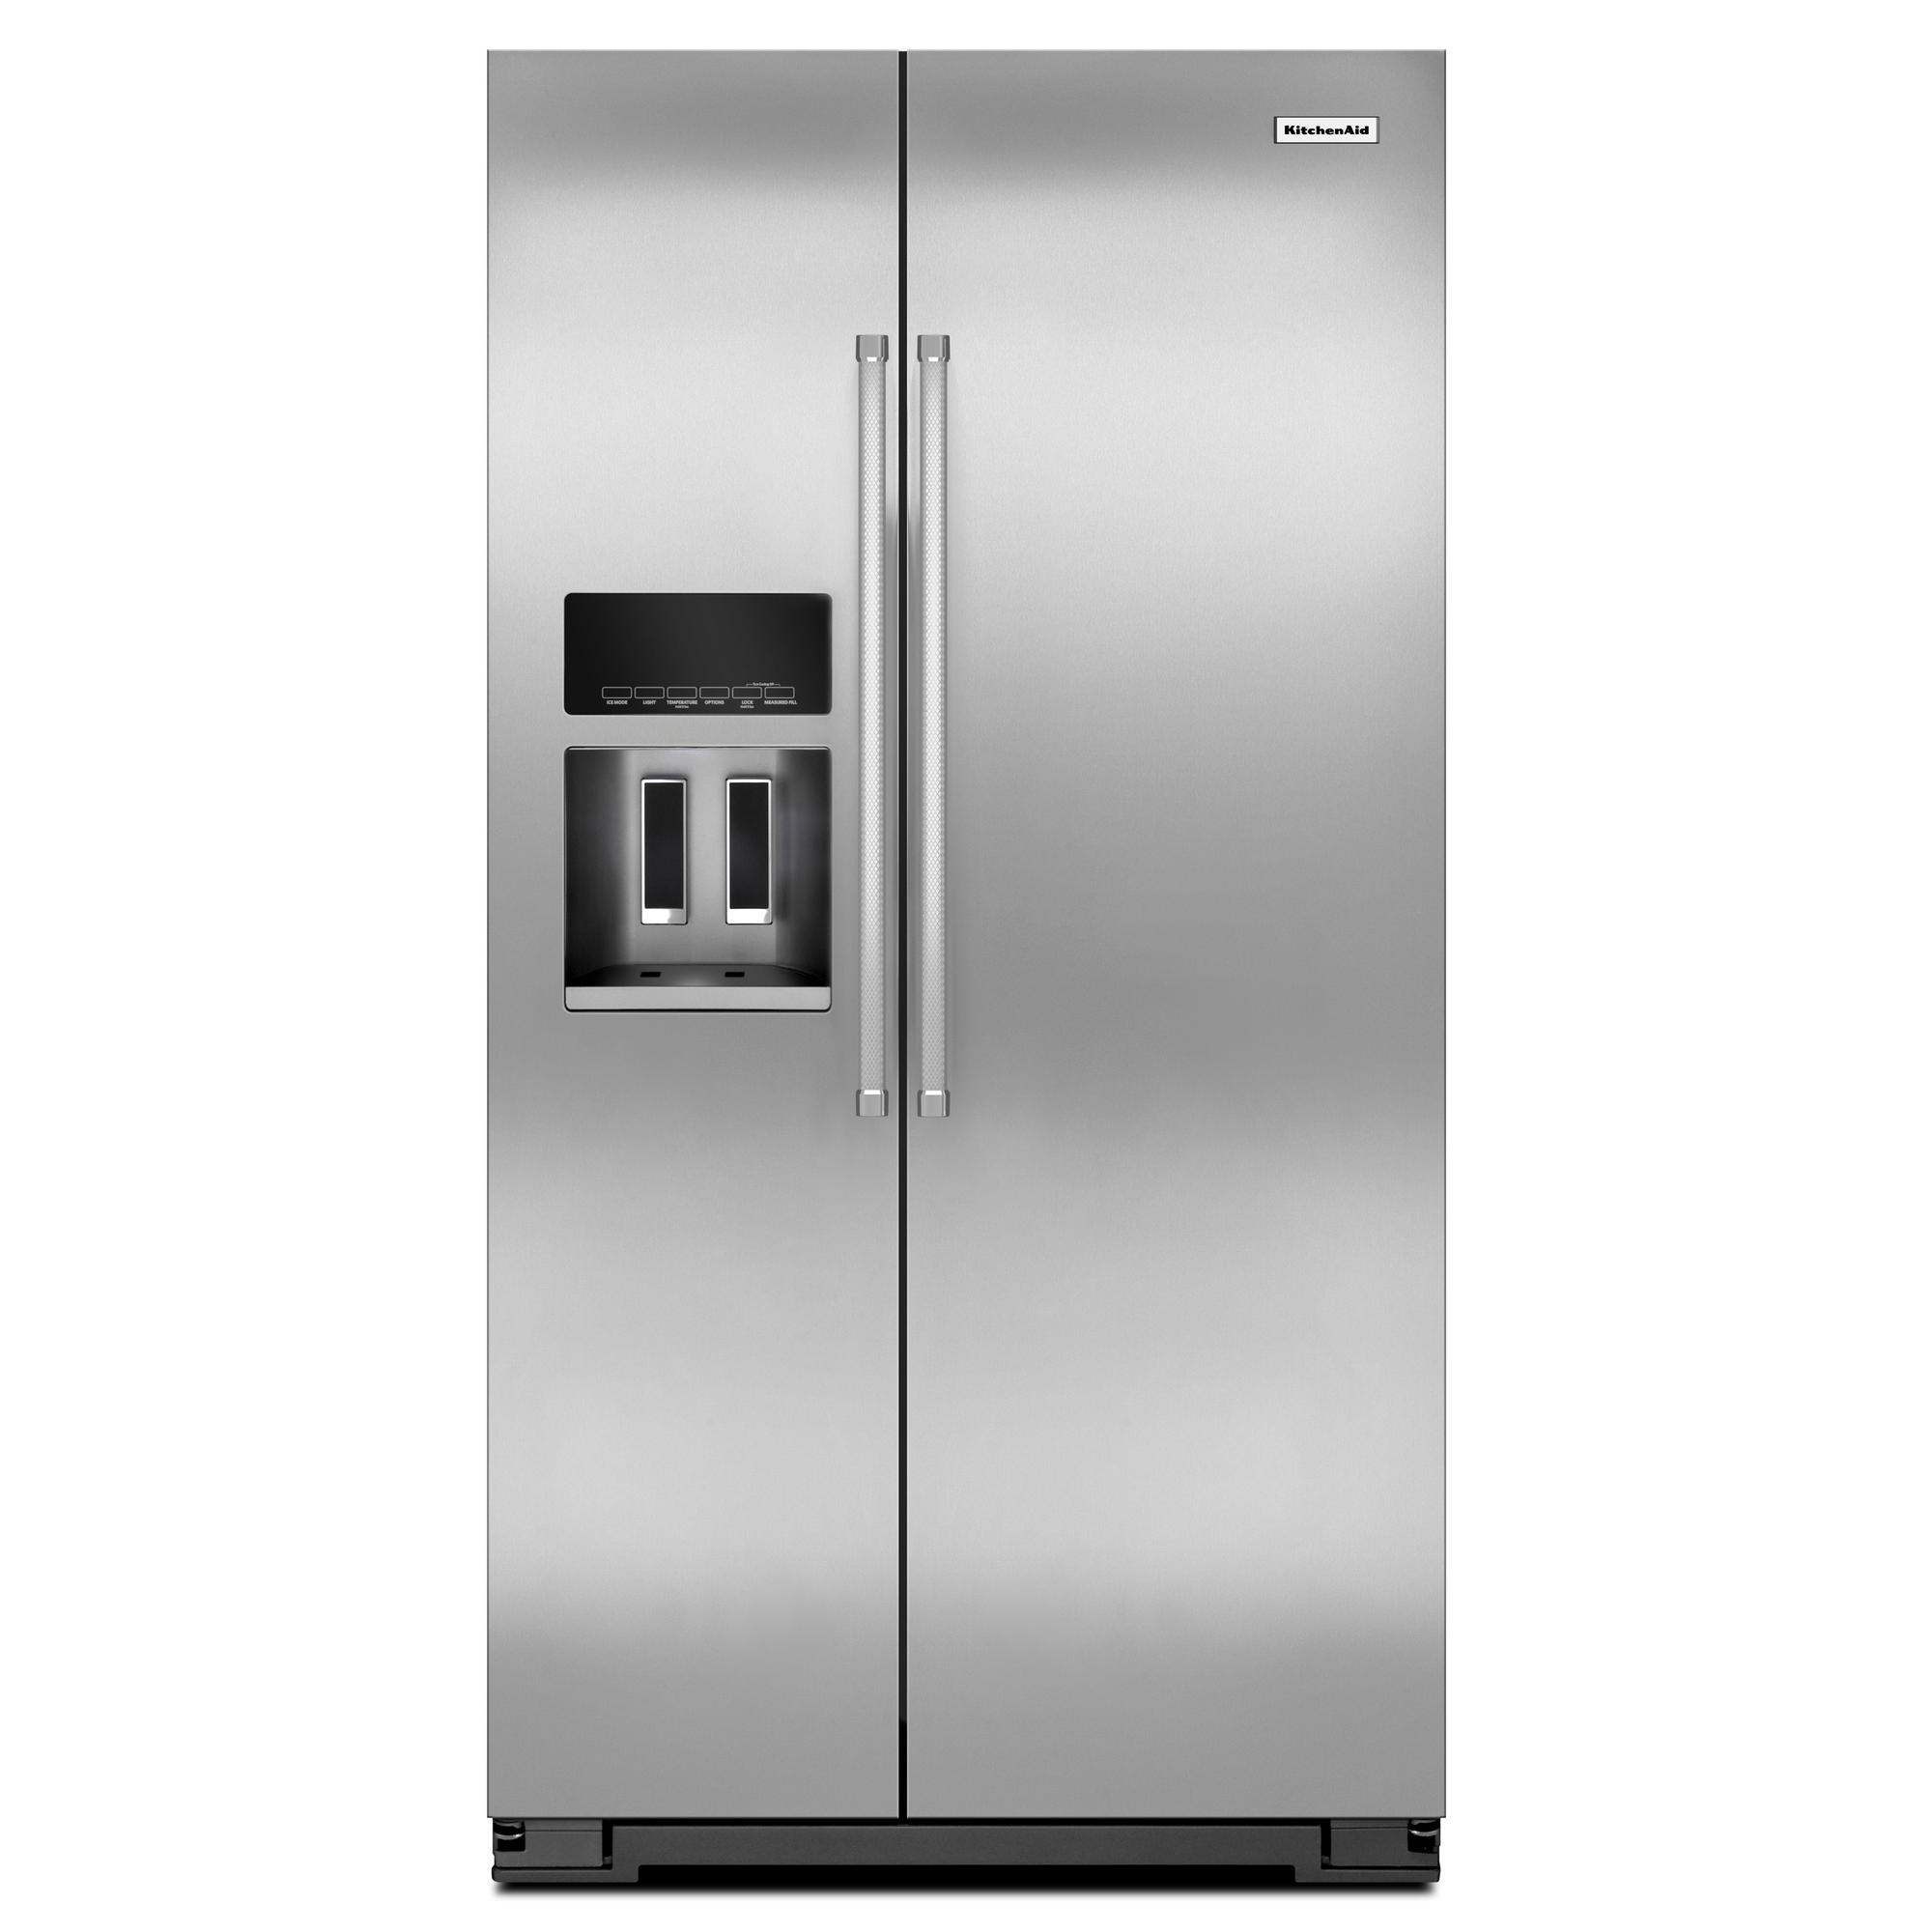 KitchenAid 19.8 cu. ft. Counter-Depth Side-by-Side Refrigerator - Stainless Steel